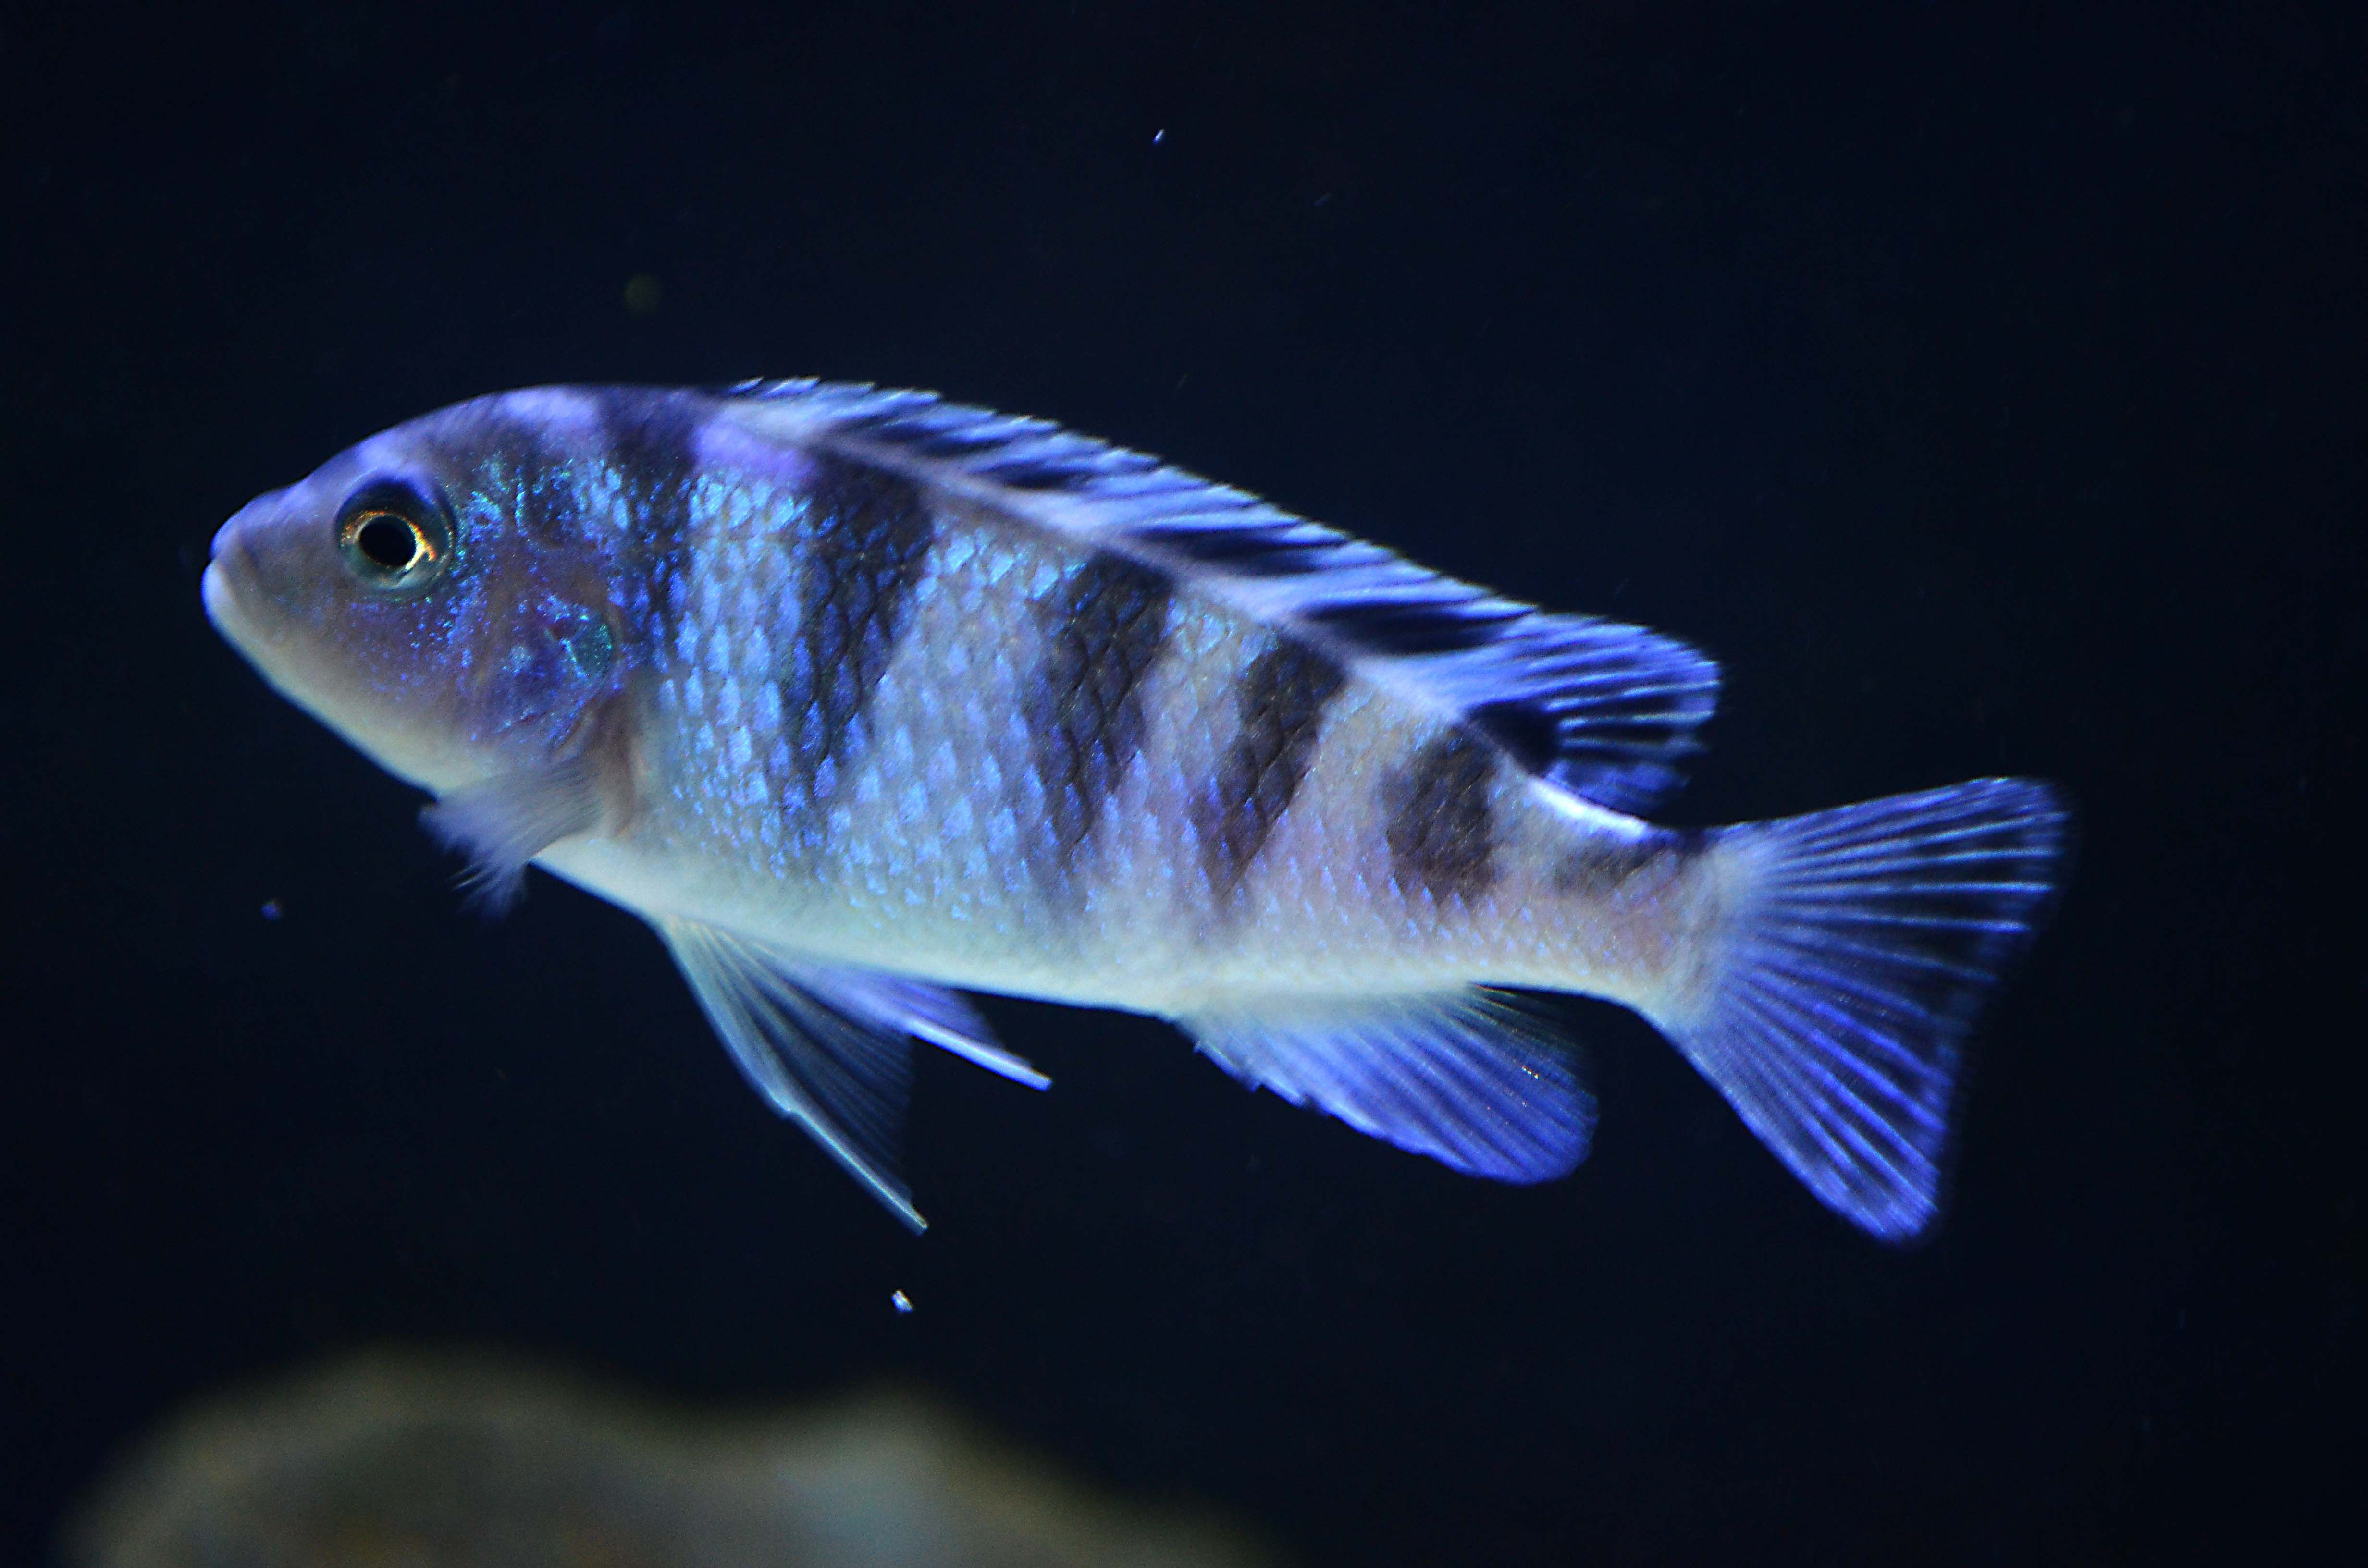 Kenyi cichlid images google search amazing african for African cichlid fish